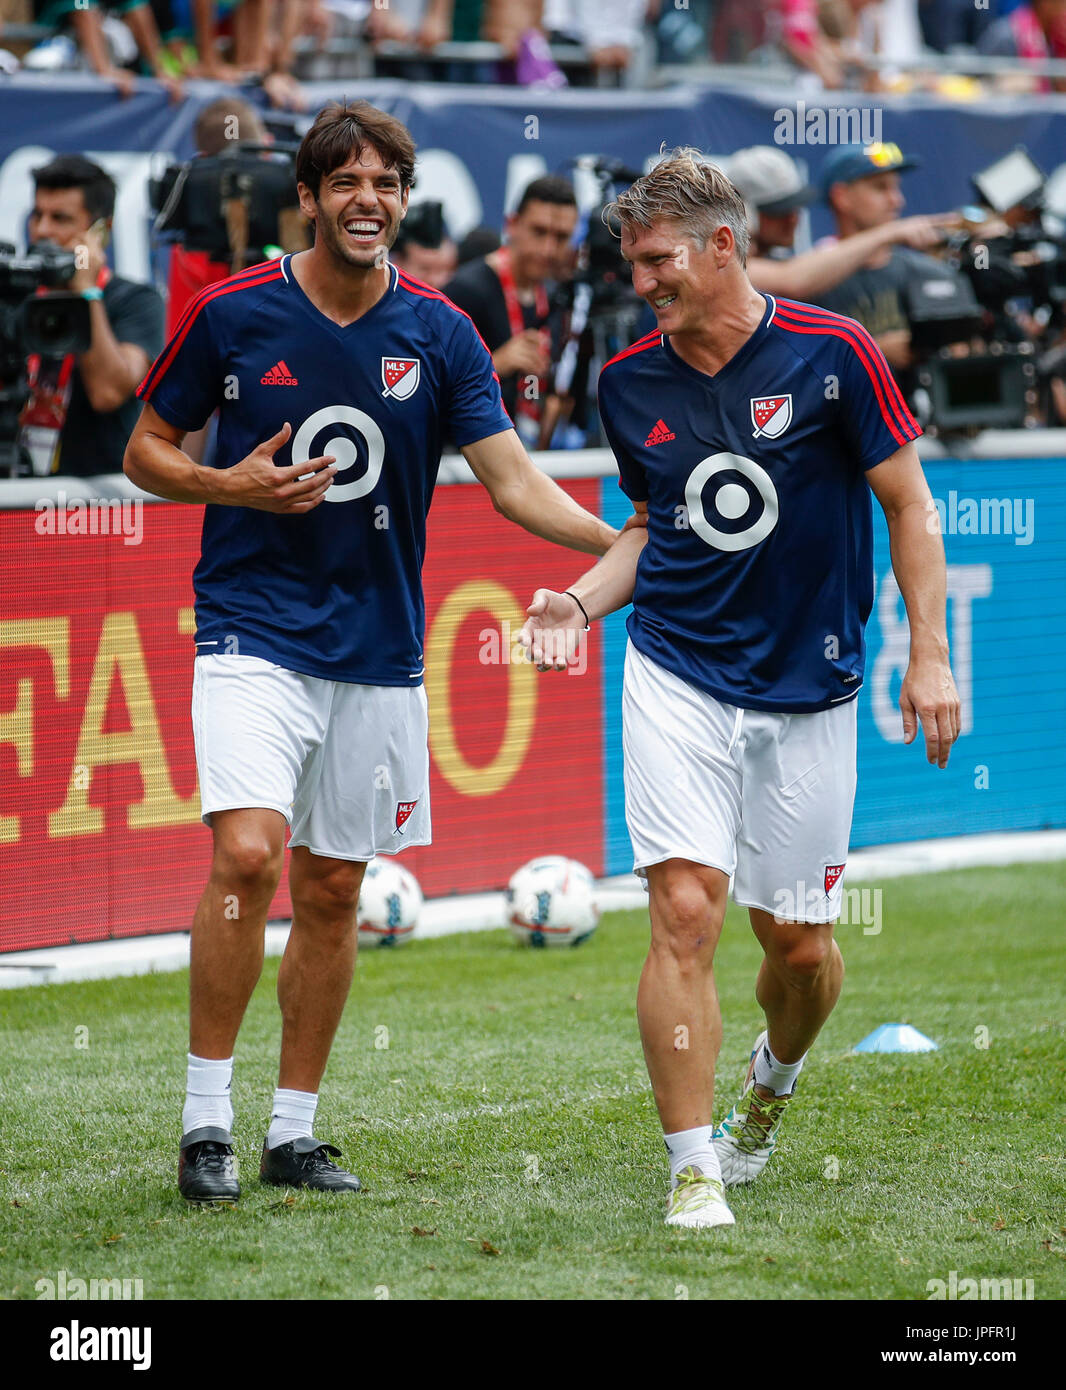 e62ff6c3fcea MLS All-Stars captain Bastian Schweinsteiger (R) and Kaka (R) participate  in a training session prior to the friendly match between Real Madrid and  the MLS ...